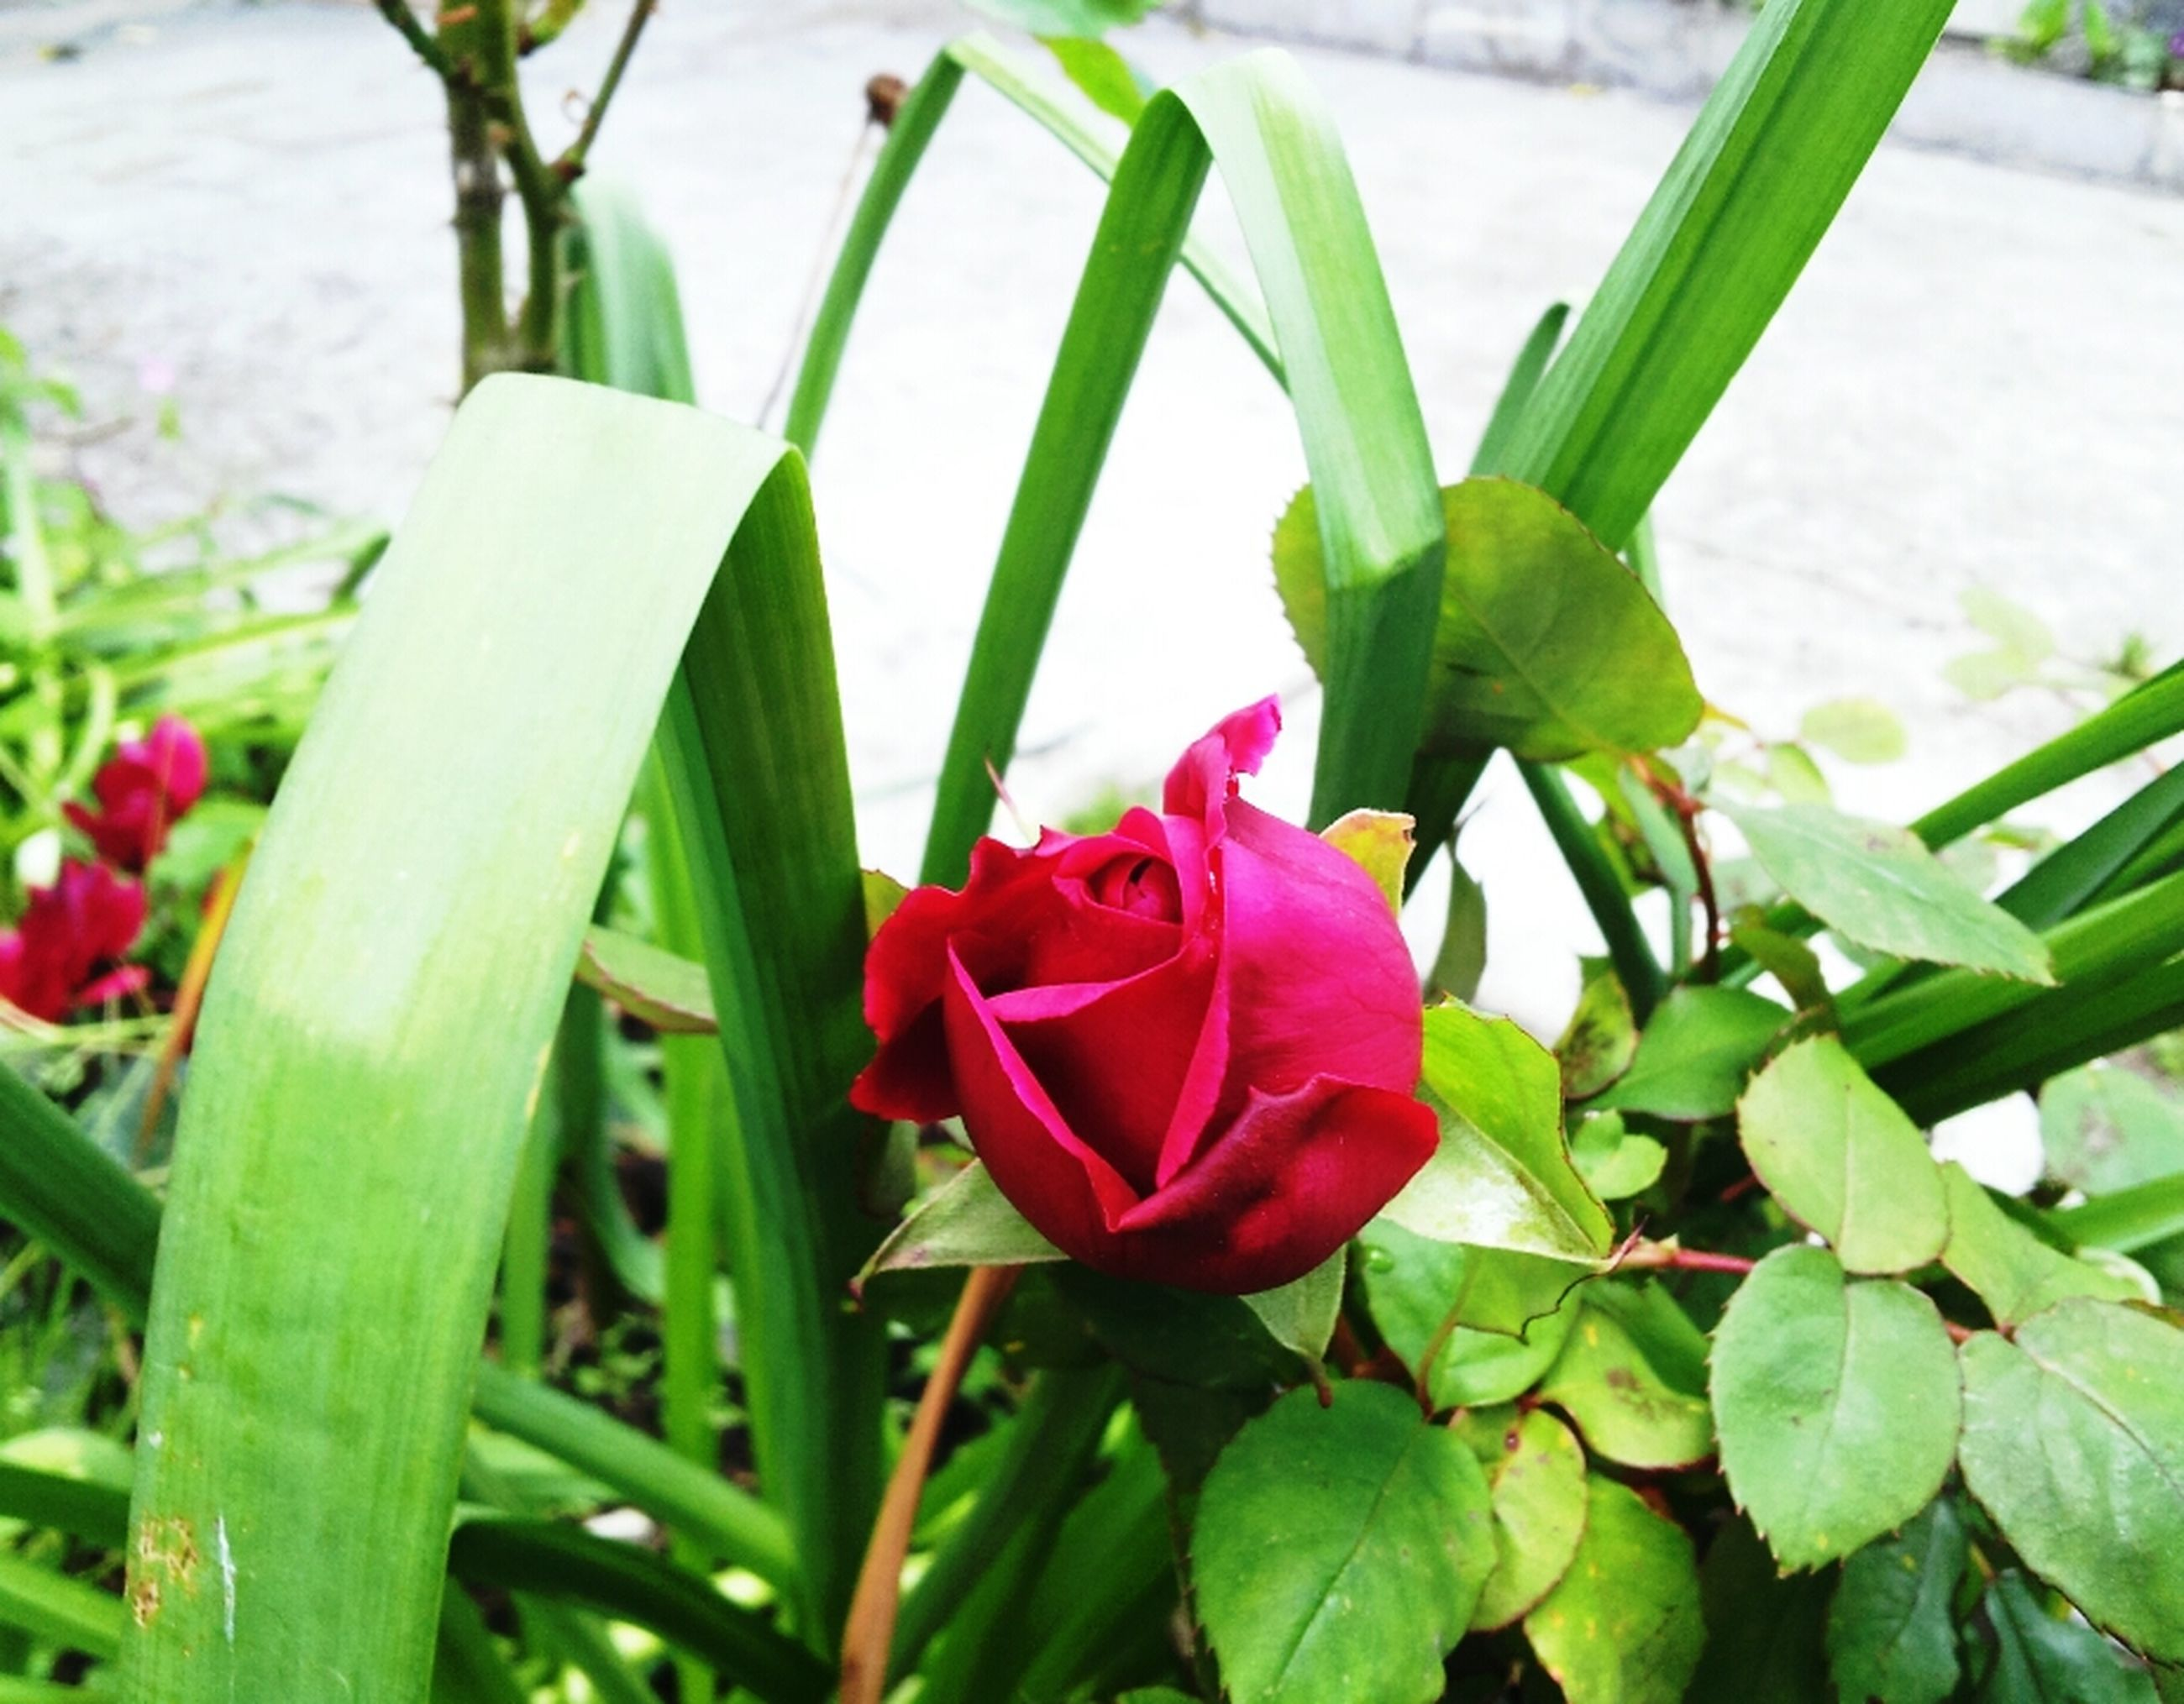 flower, growth, petal, leaf, freshness, plant, flower head, fragility, green color, beauty in nature, close-up, nature, pink color, single flower, focus on foreground, blooming, park - man made space, day, outdoors, no people